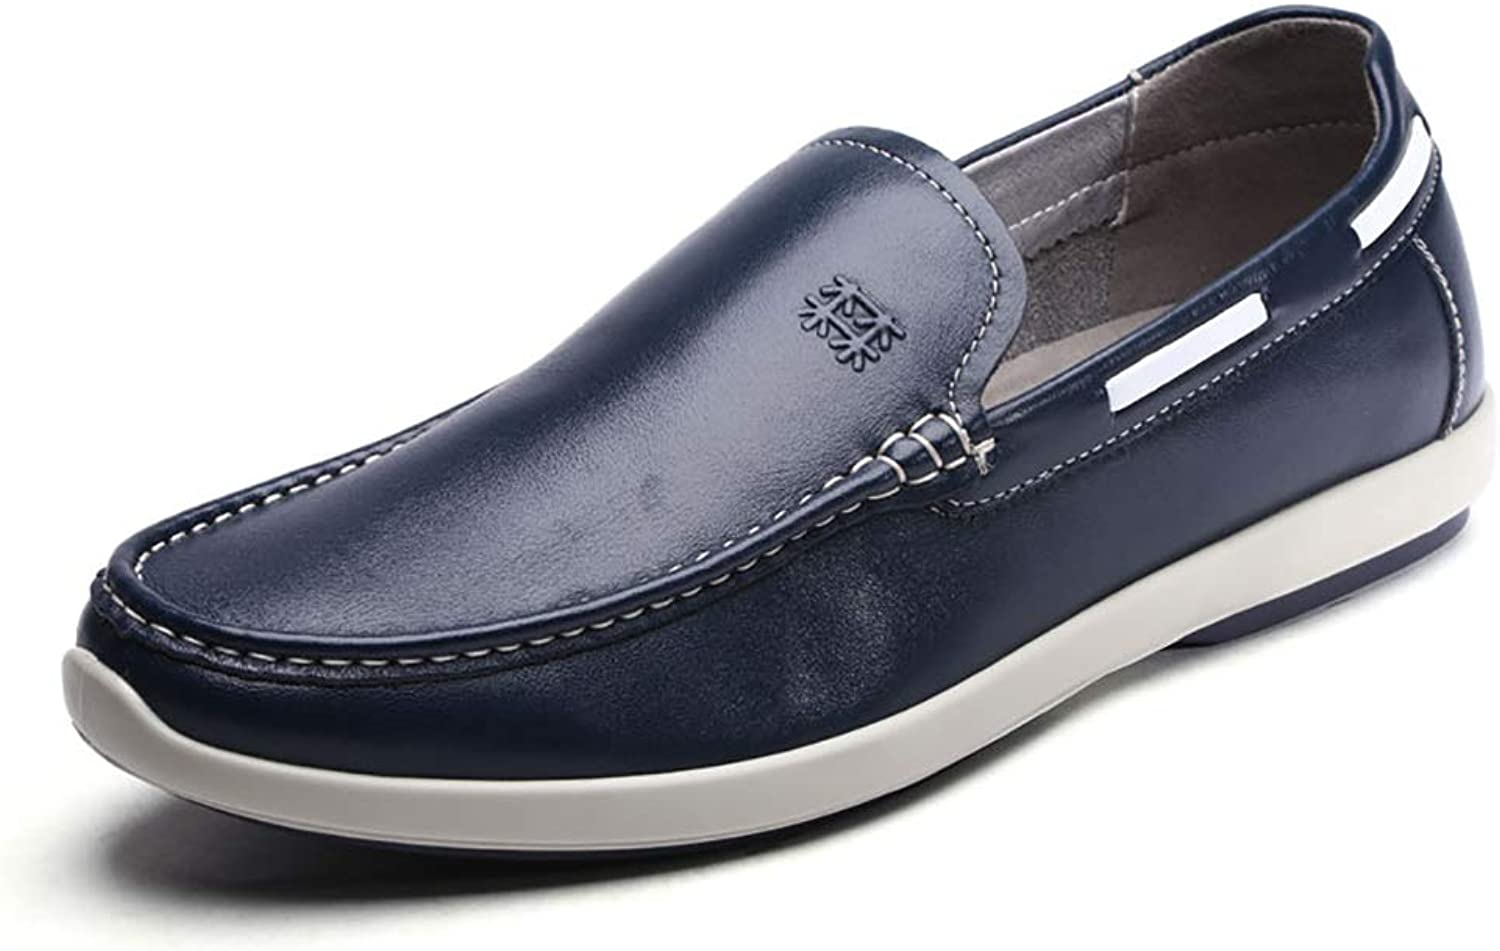 LXLA- Men's Business Casual Slip-on Leather shoes, Mens Comfortable Plain Toe Loafers for Men (color   bluee, Size   41)